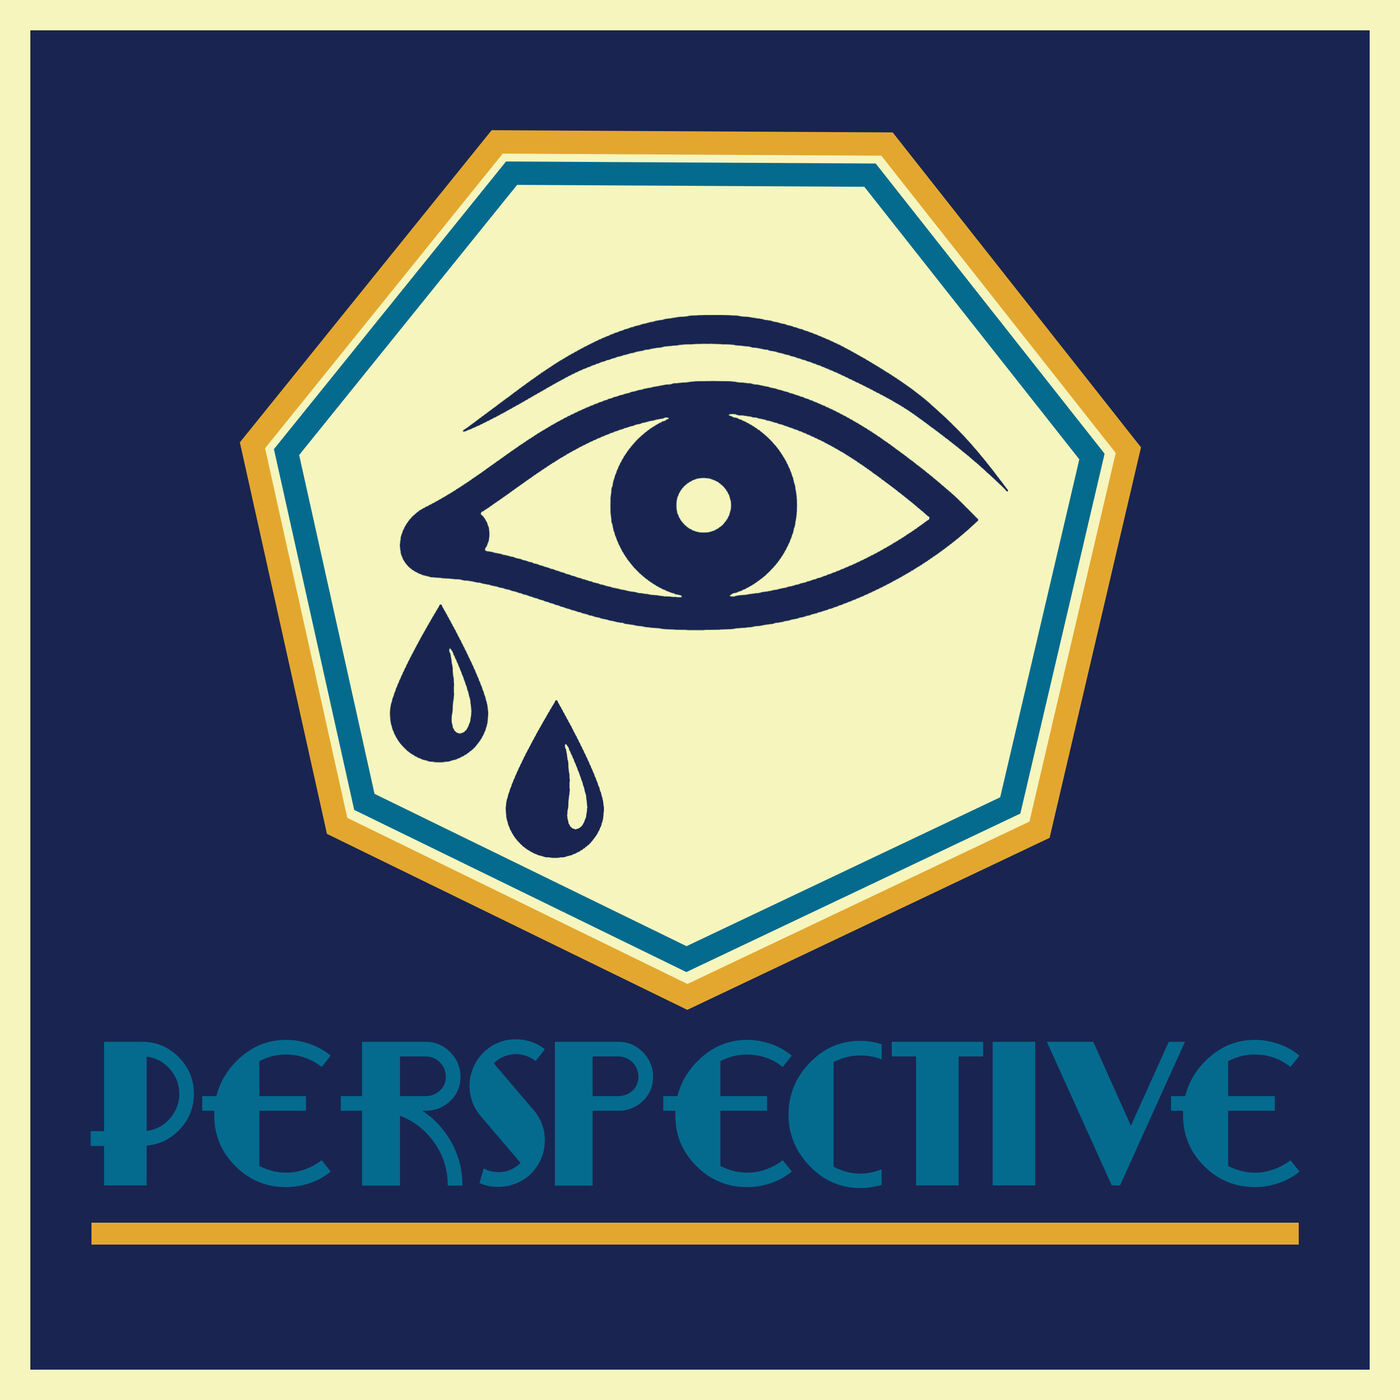 Perspective: Where to Find It with Guest Travis Child